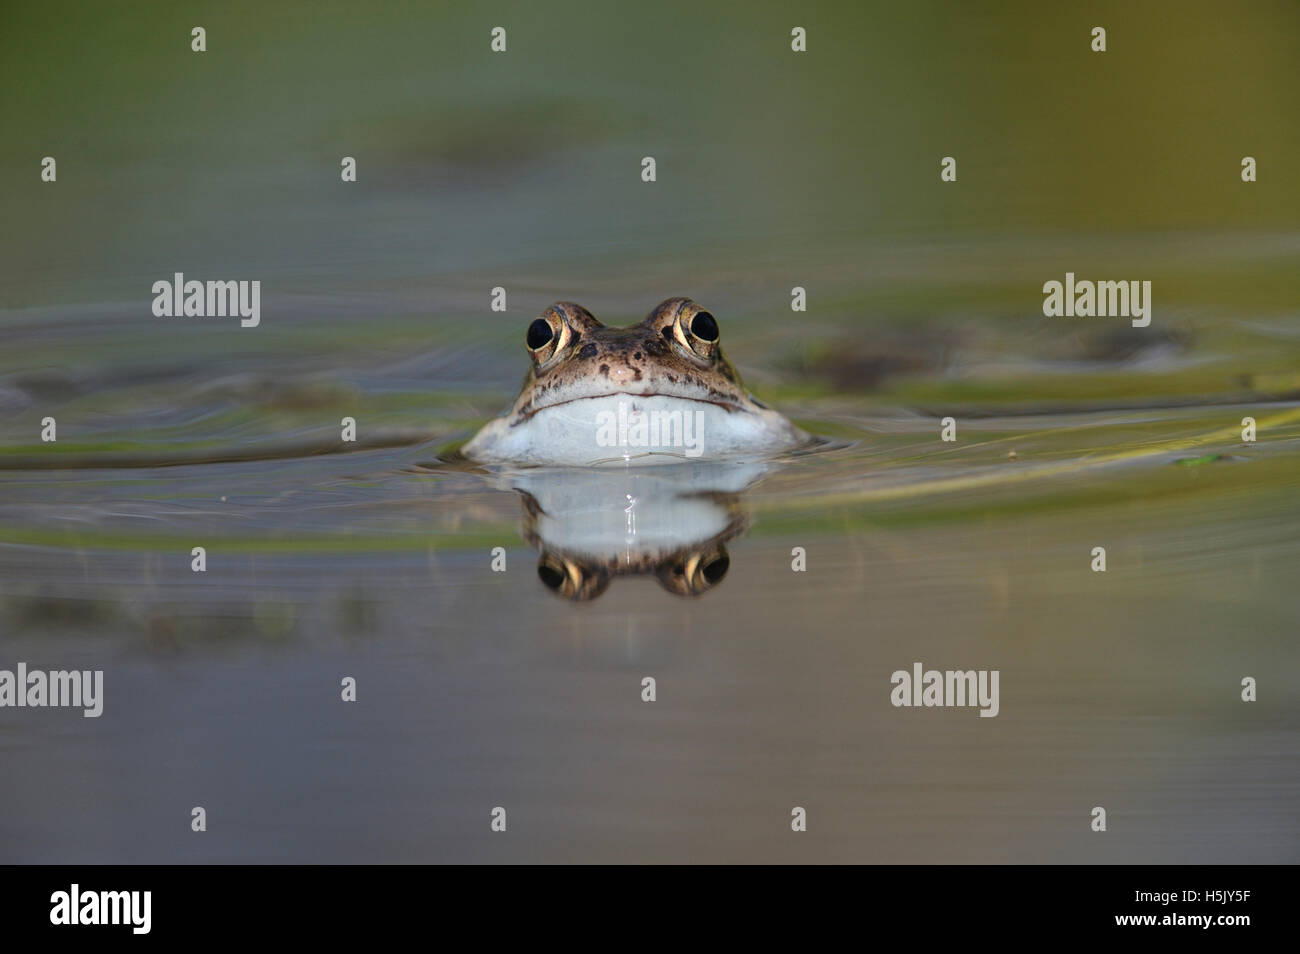 Common Frog in garden pond with reflection, about to croak, Bentley, Suffolk, March - Stock Image